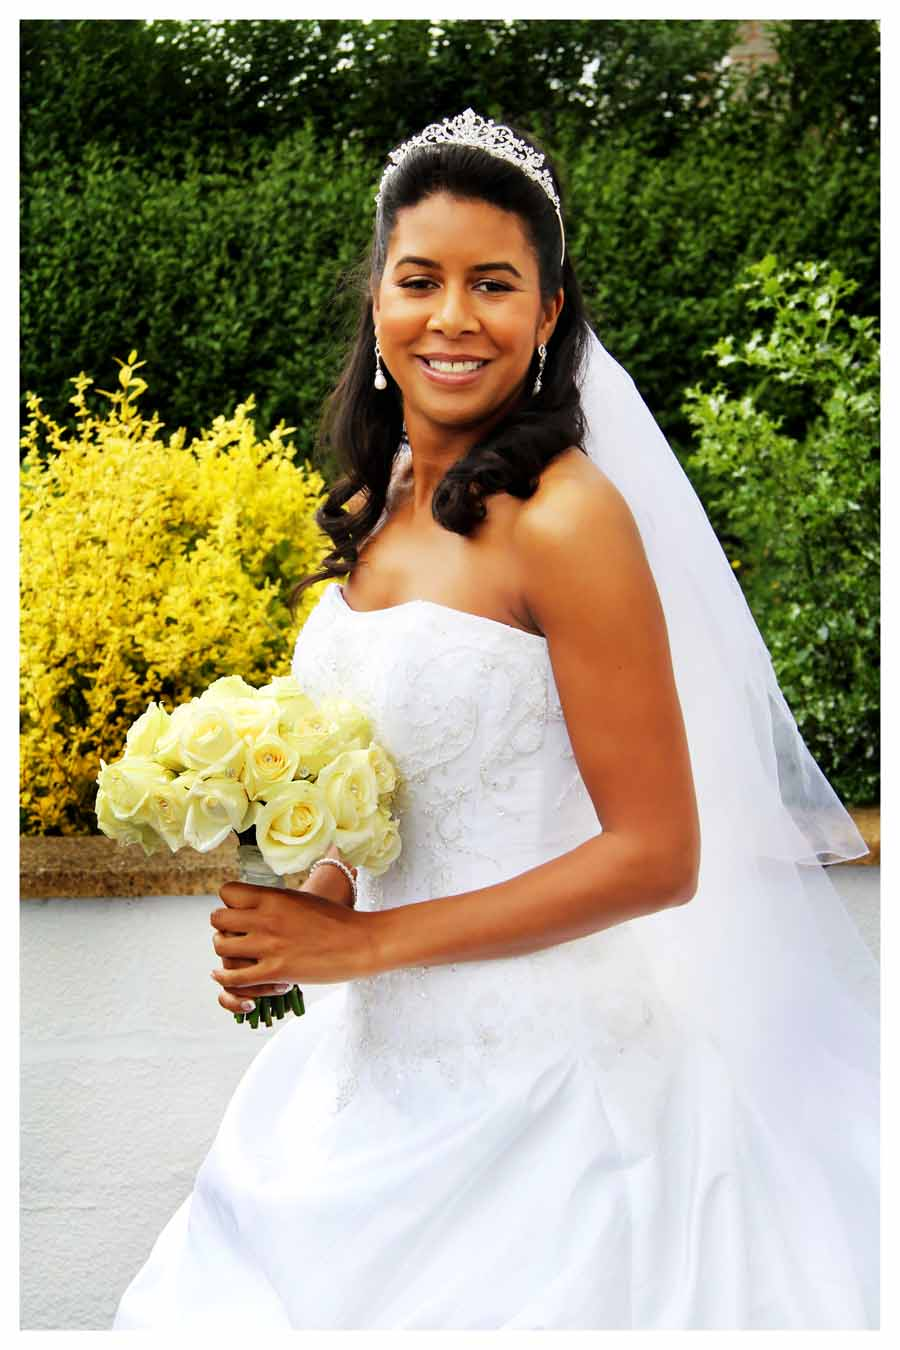 BRIDE Photos by Simeon Thaw copyright 2014 (71).jpg